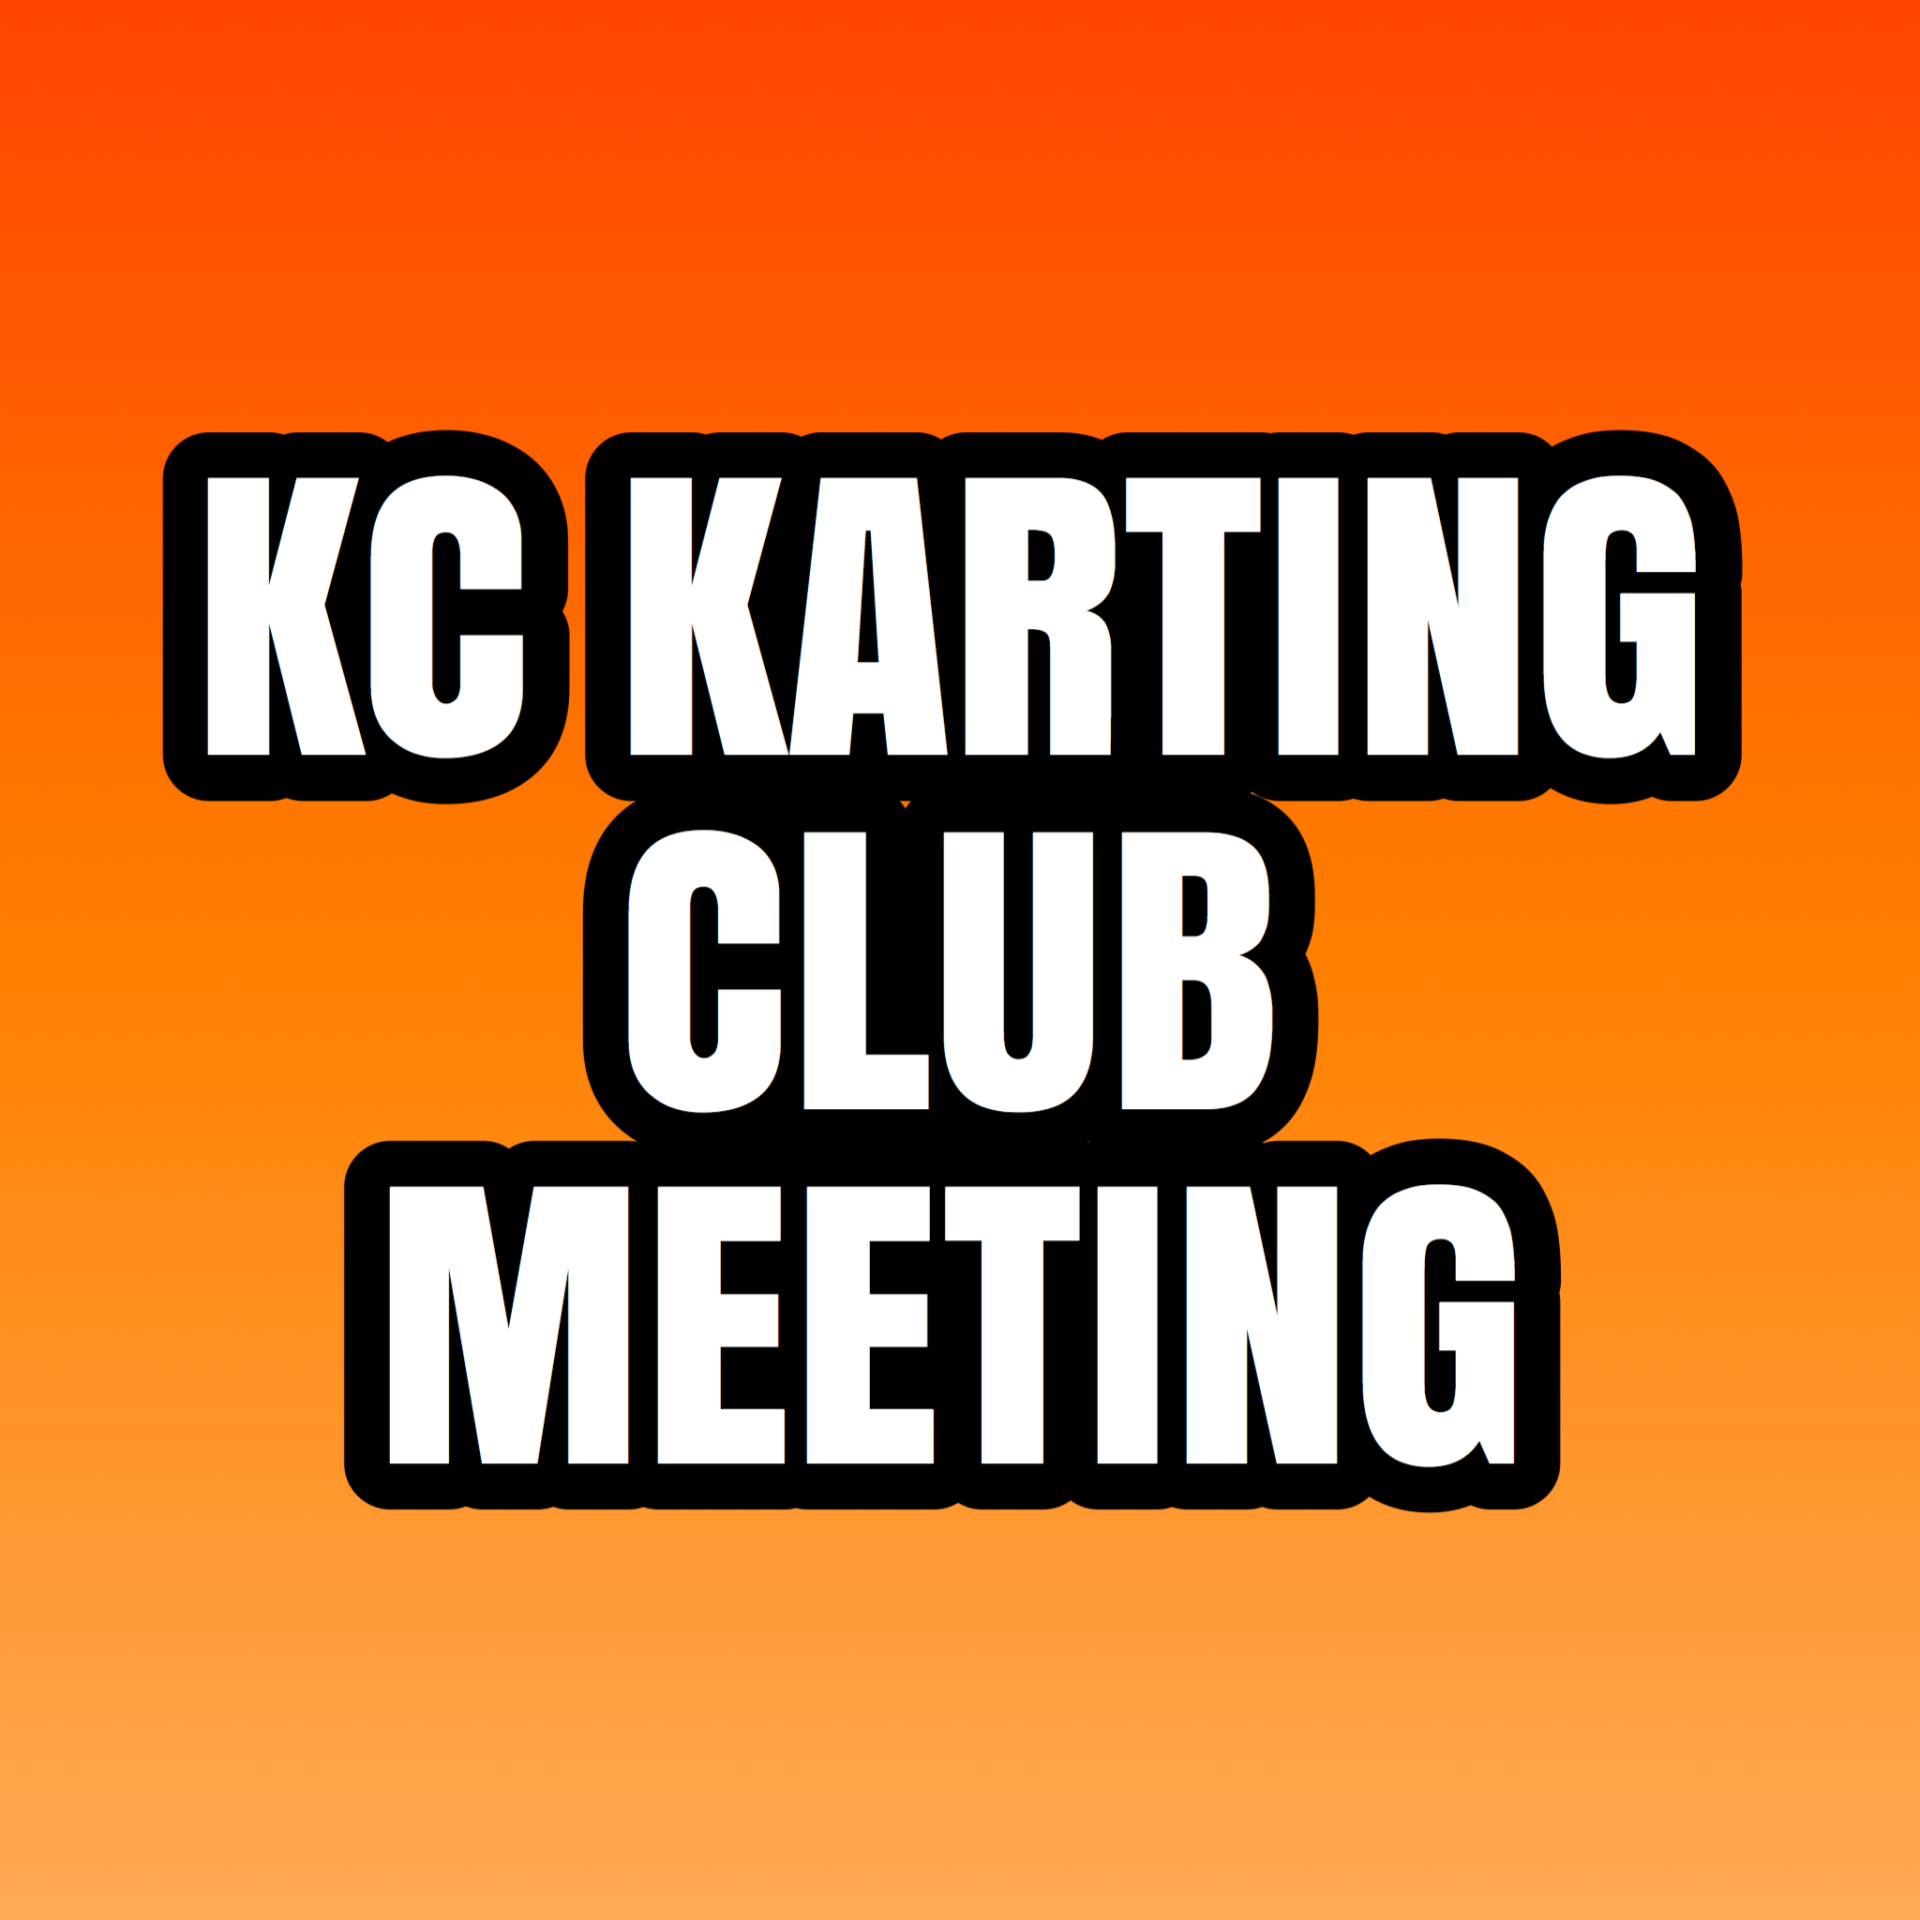 UPCOMING EVENT: KCKA Club Meeting